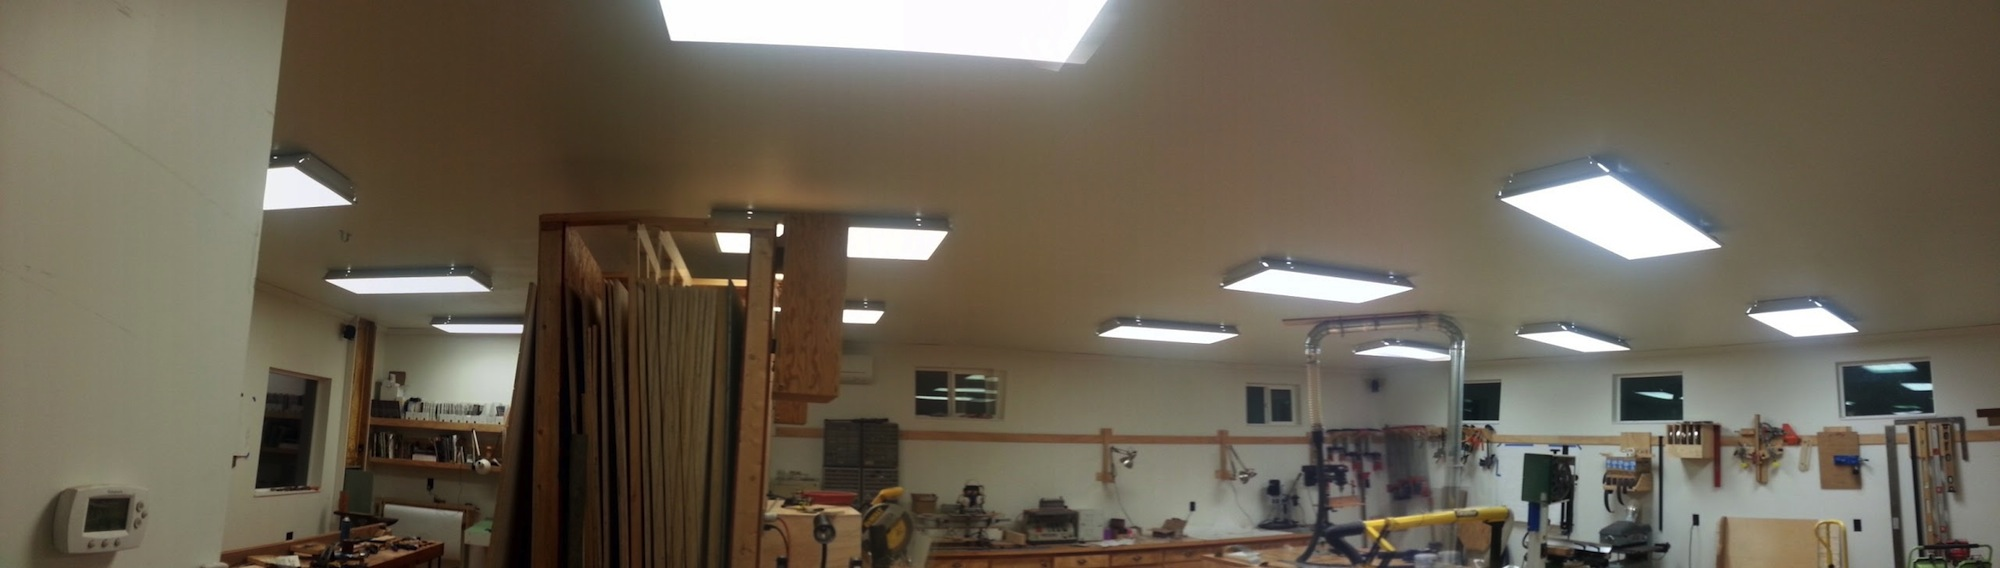 Shop Lighting For Woodworkers The Wood Whisperer